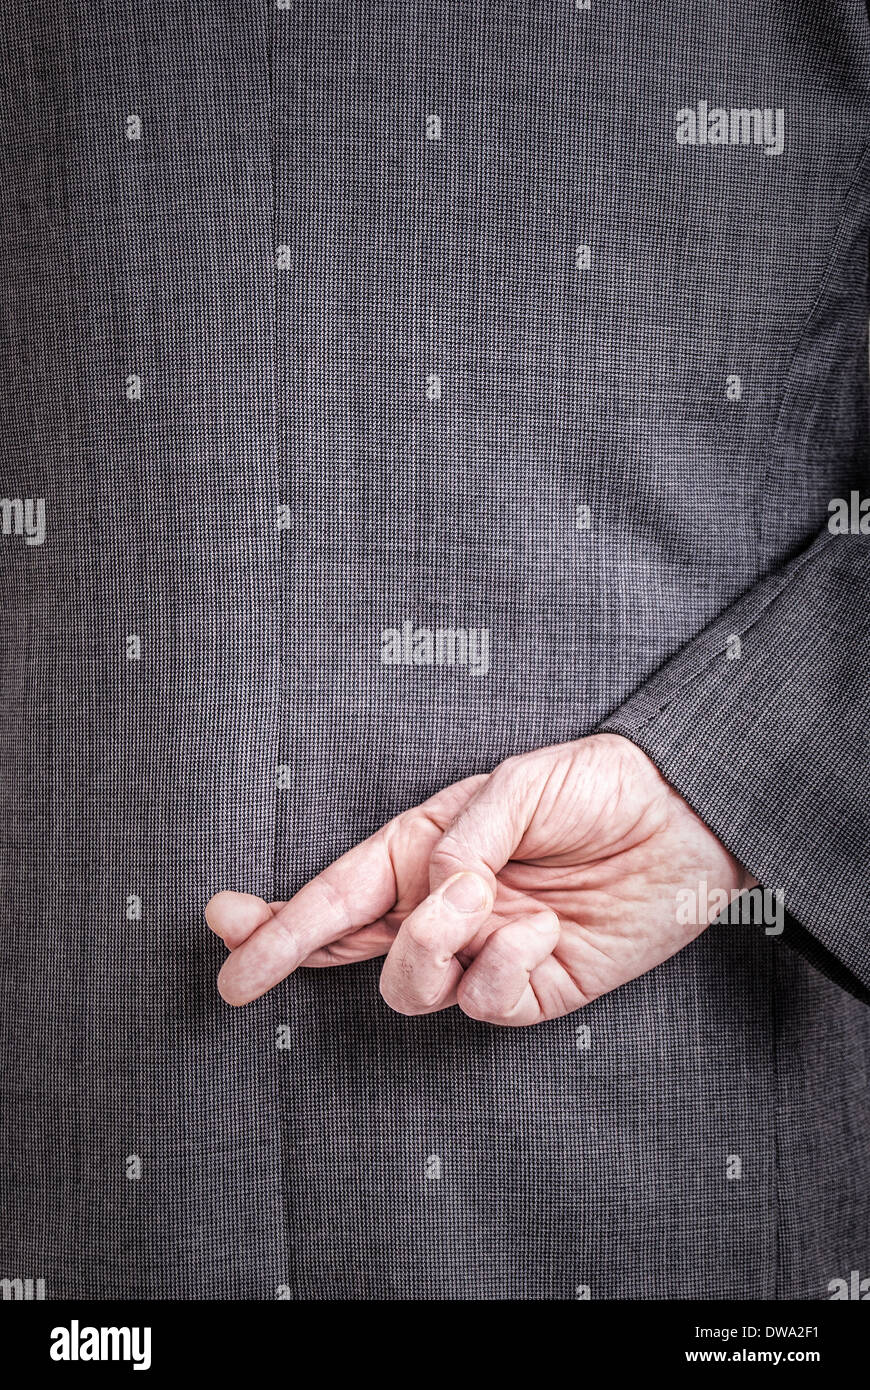 A conceptial image of a business man with his fingers crossed behind his back. - Stock Image